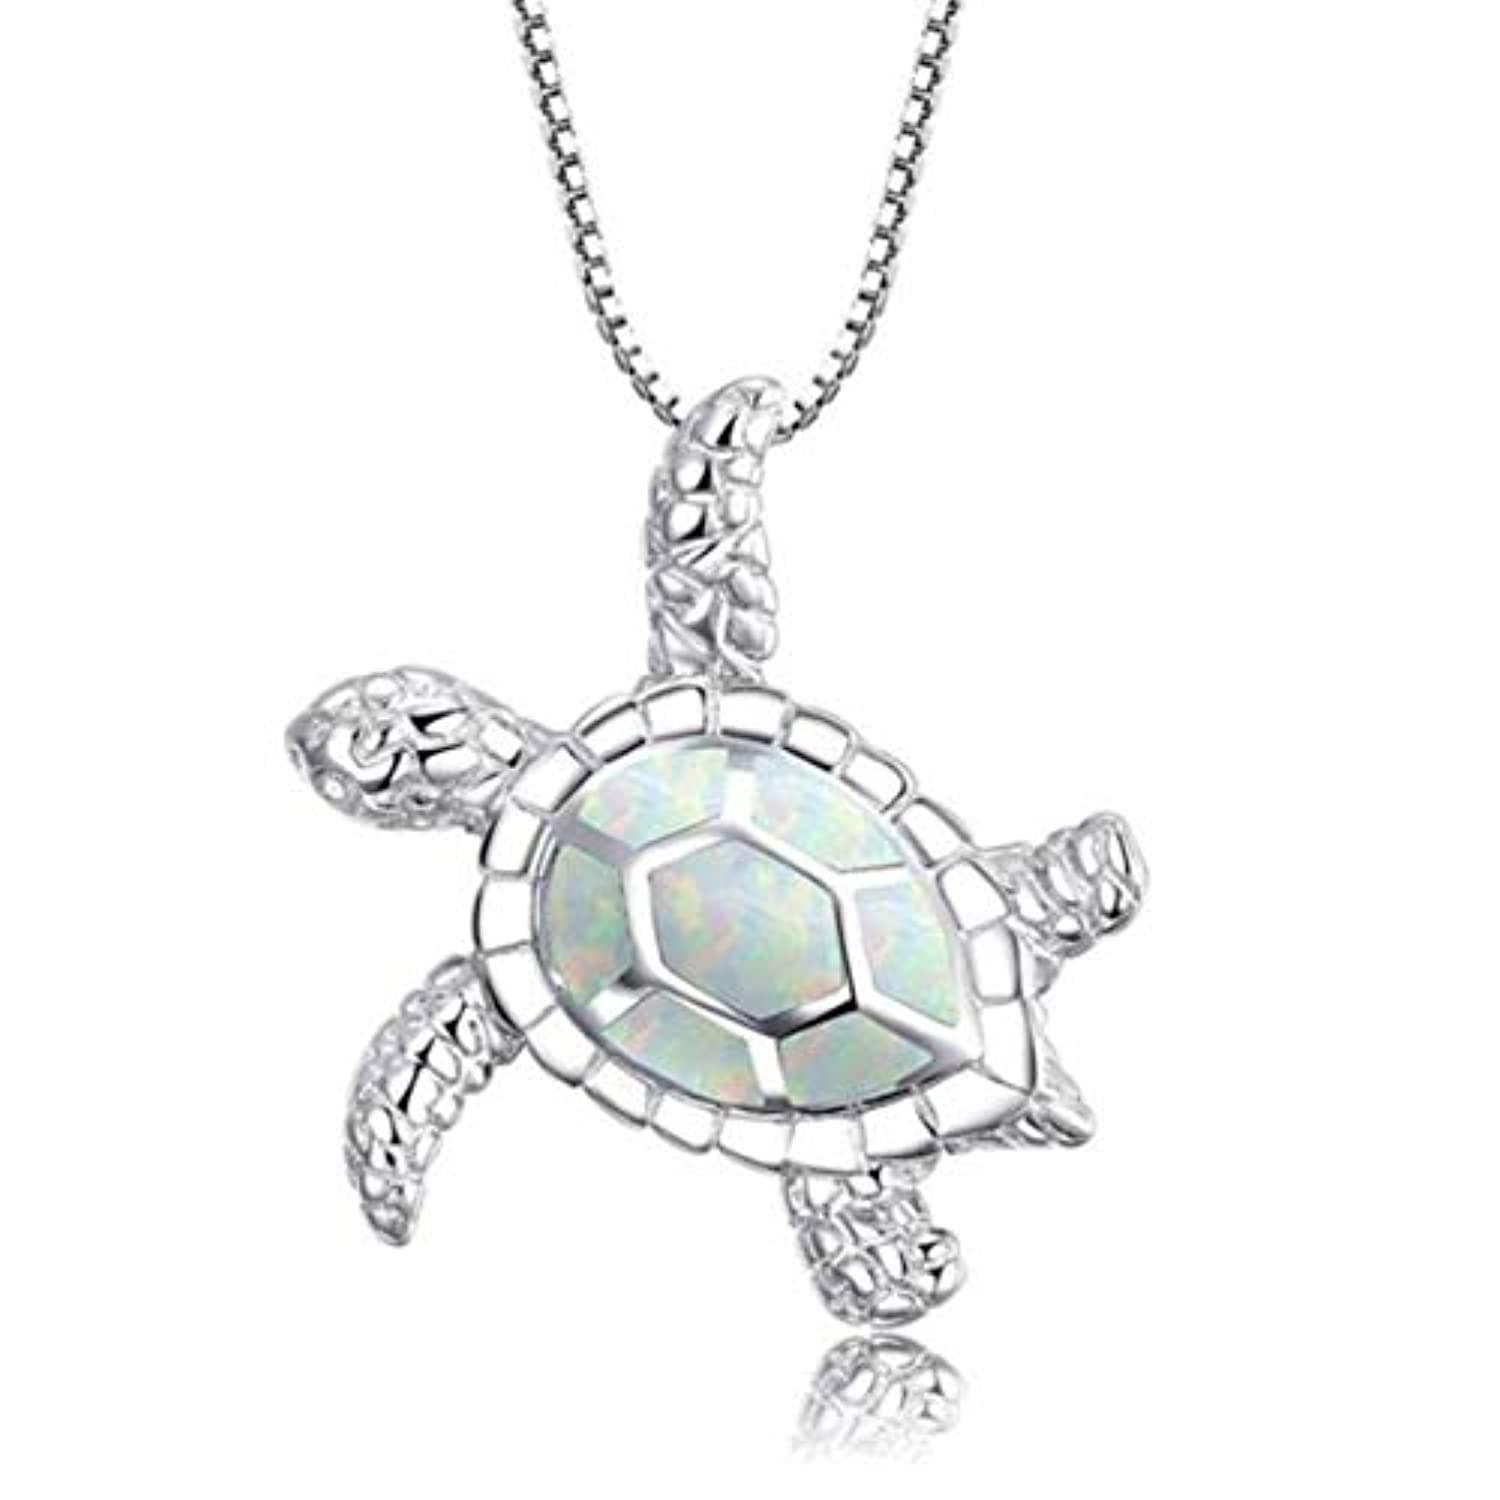 Cute Turtle Pendant Necklace